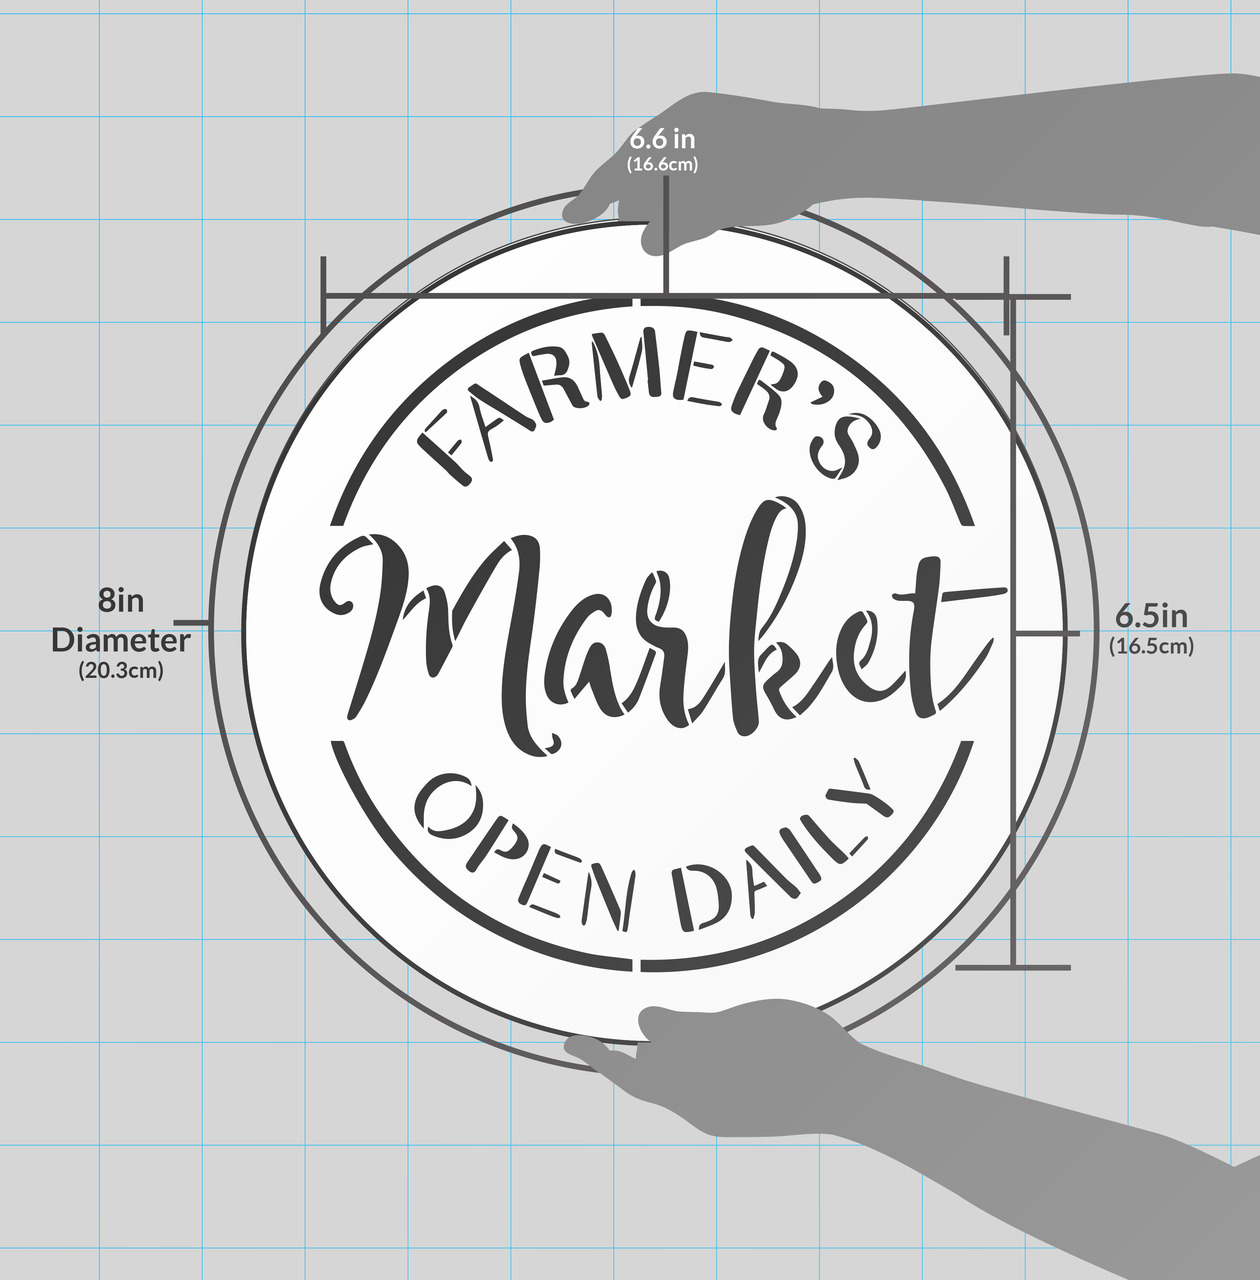 """Farmer's Market Open Daily Stencil by StudioR12 - Country Word Art - 18"""" Round - STCL2456_4"""